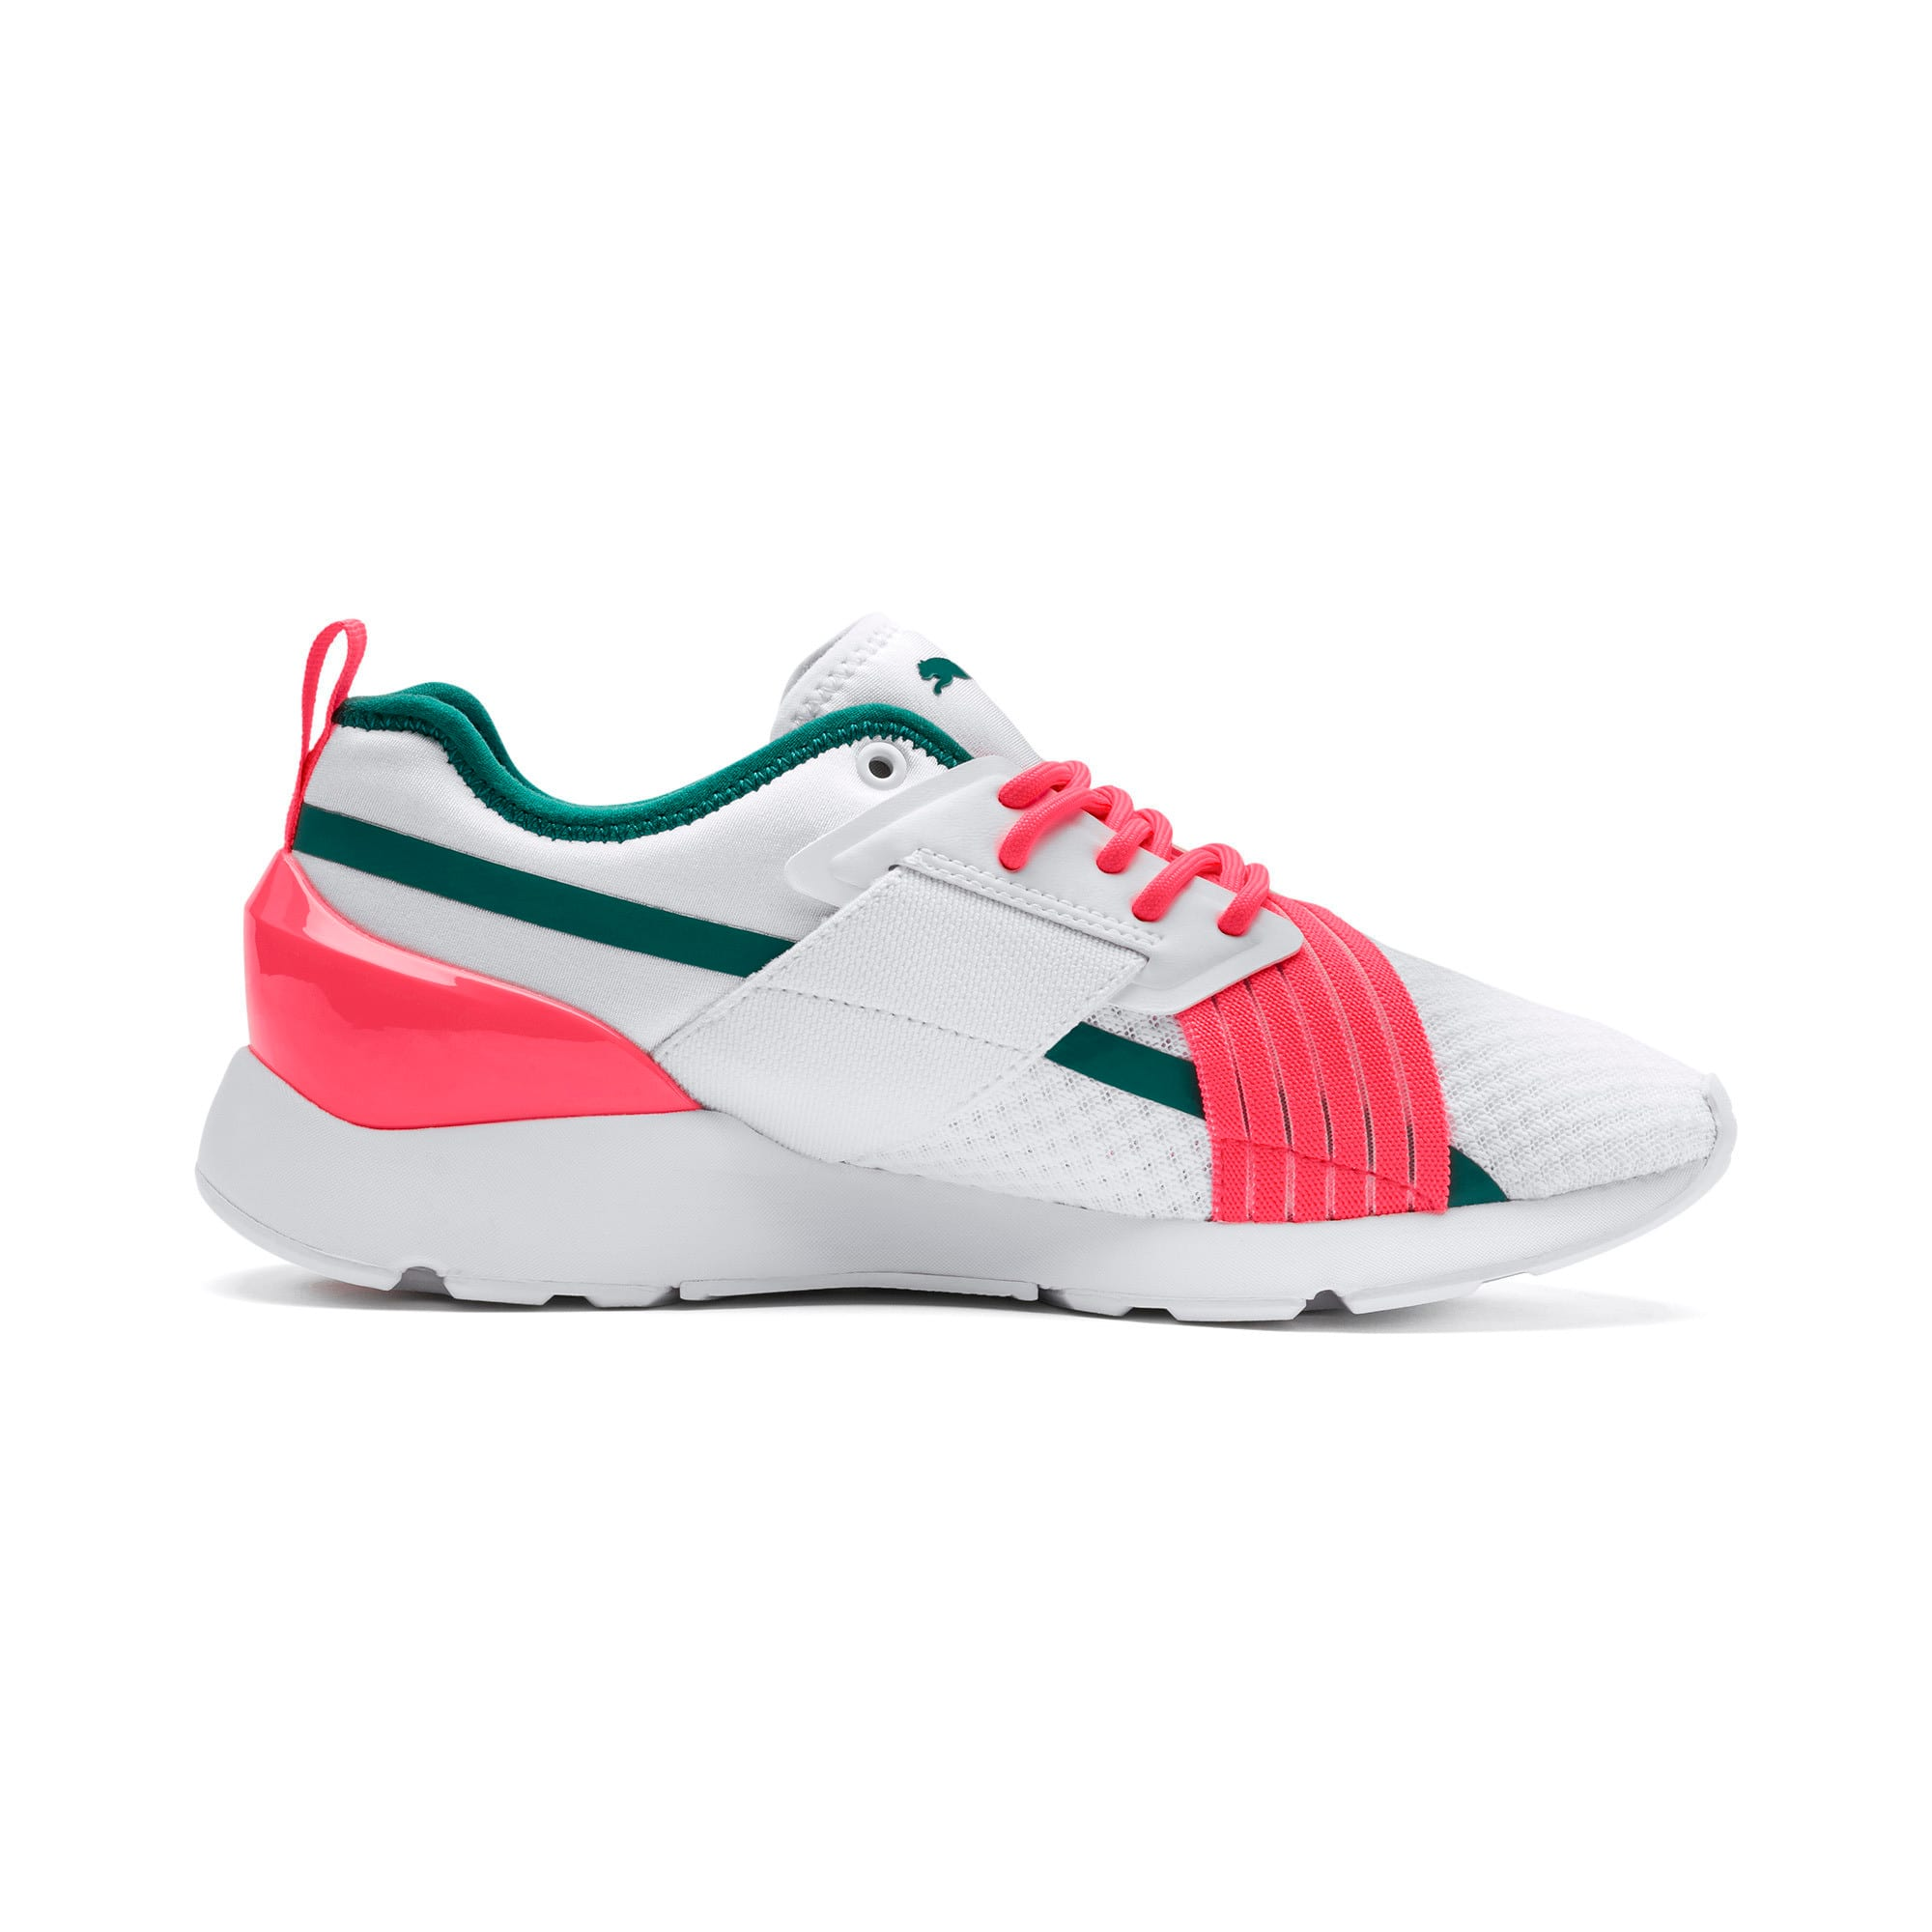 Muse X-2 Women's Sneakers, Puma White-Pink Alert, large